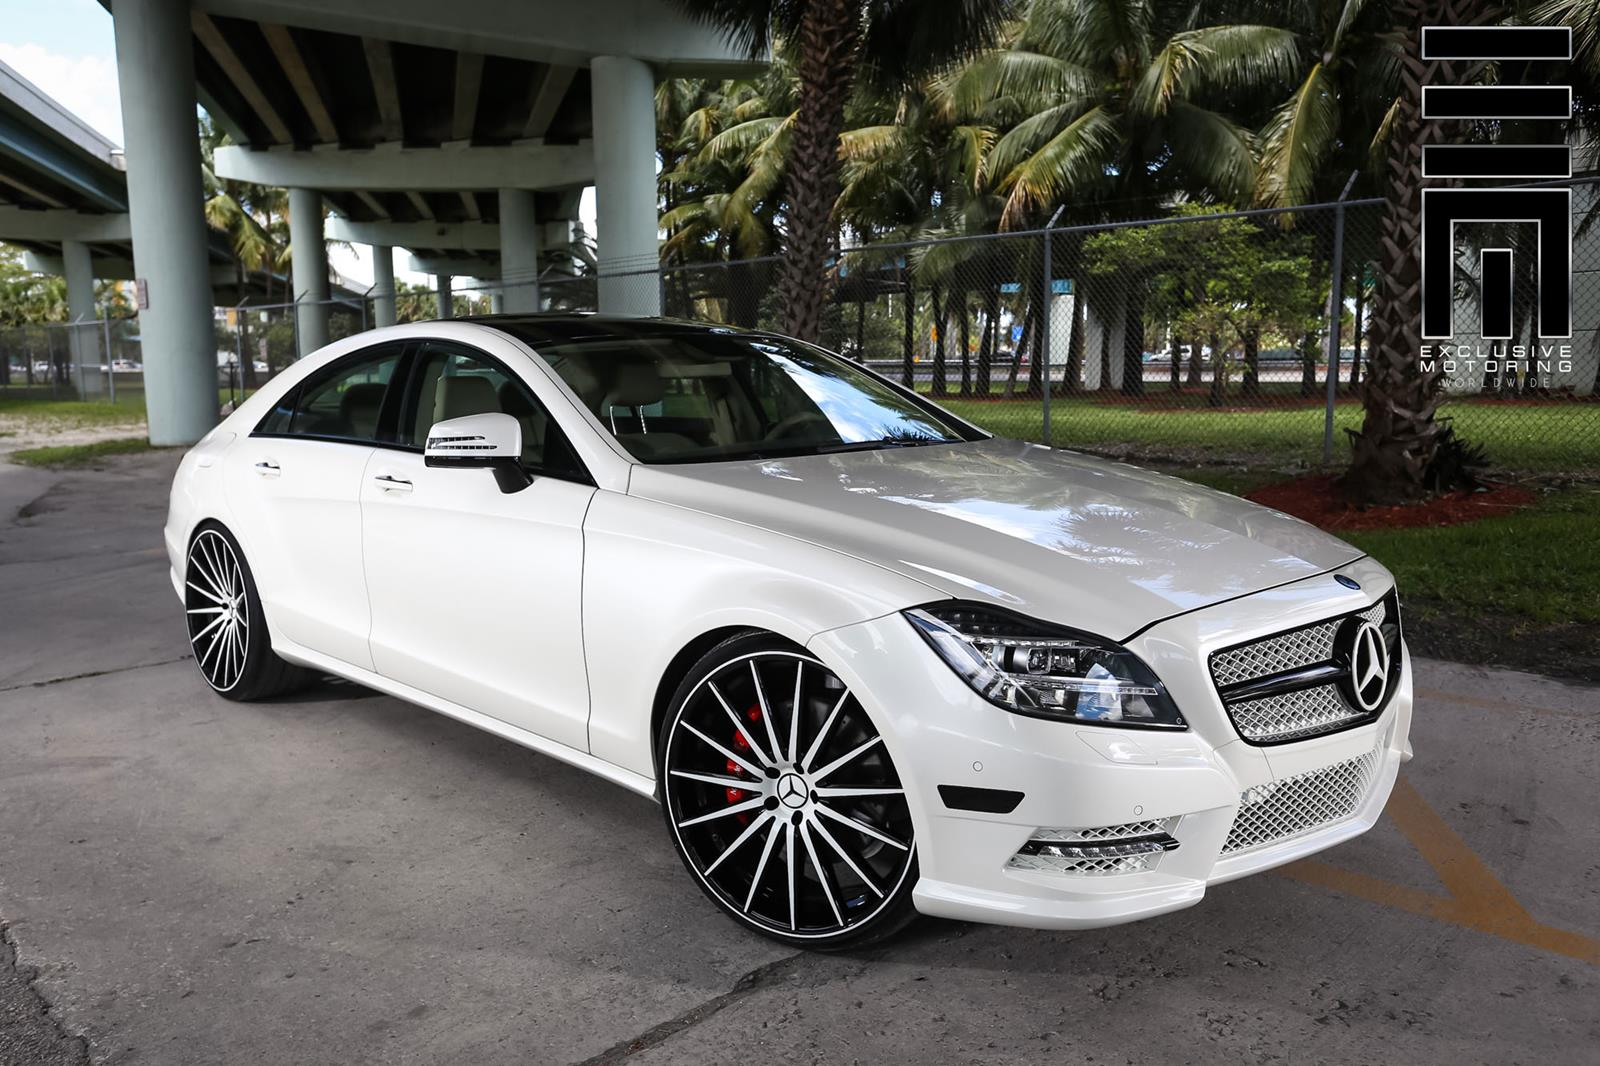 Mercedes benz w218 cls550 white on vossen vfs2 wheels for Mercedes benz wheel